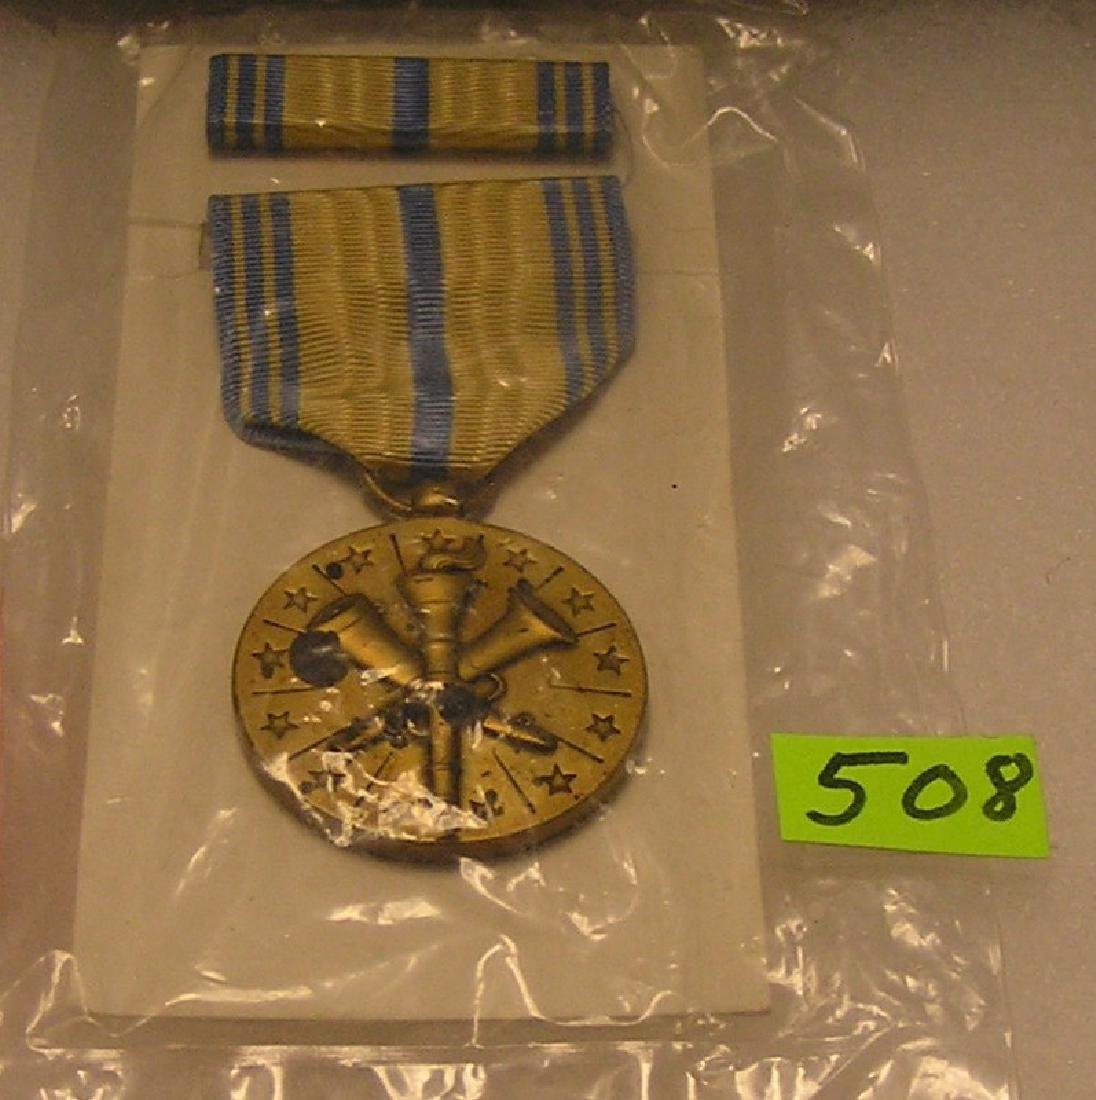 Armed forces medal ribbon and bar set